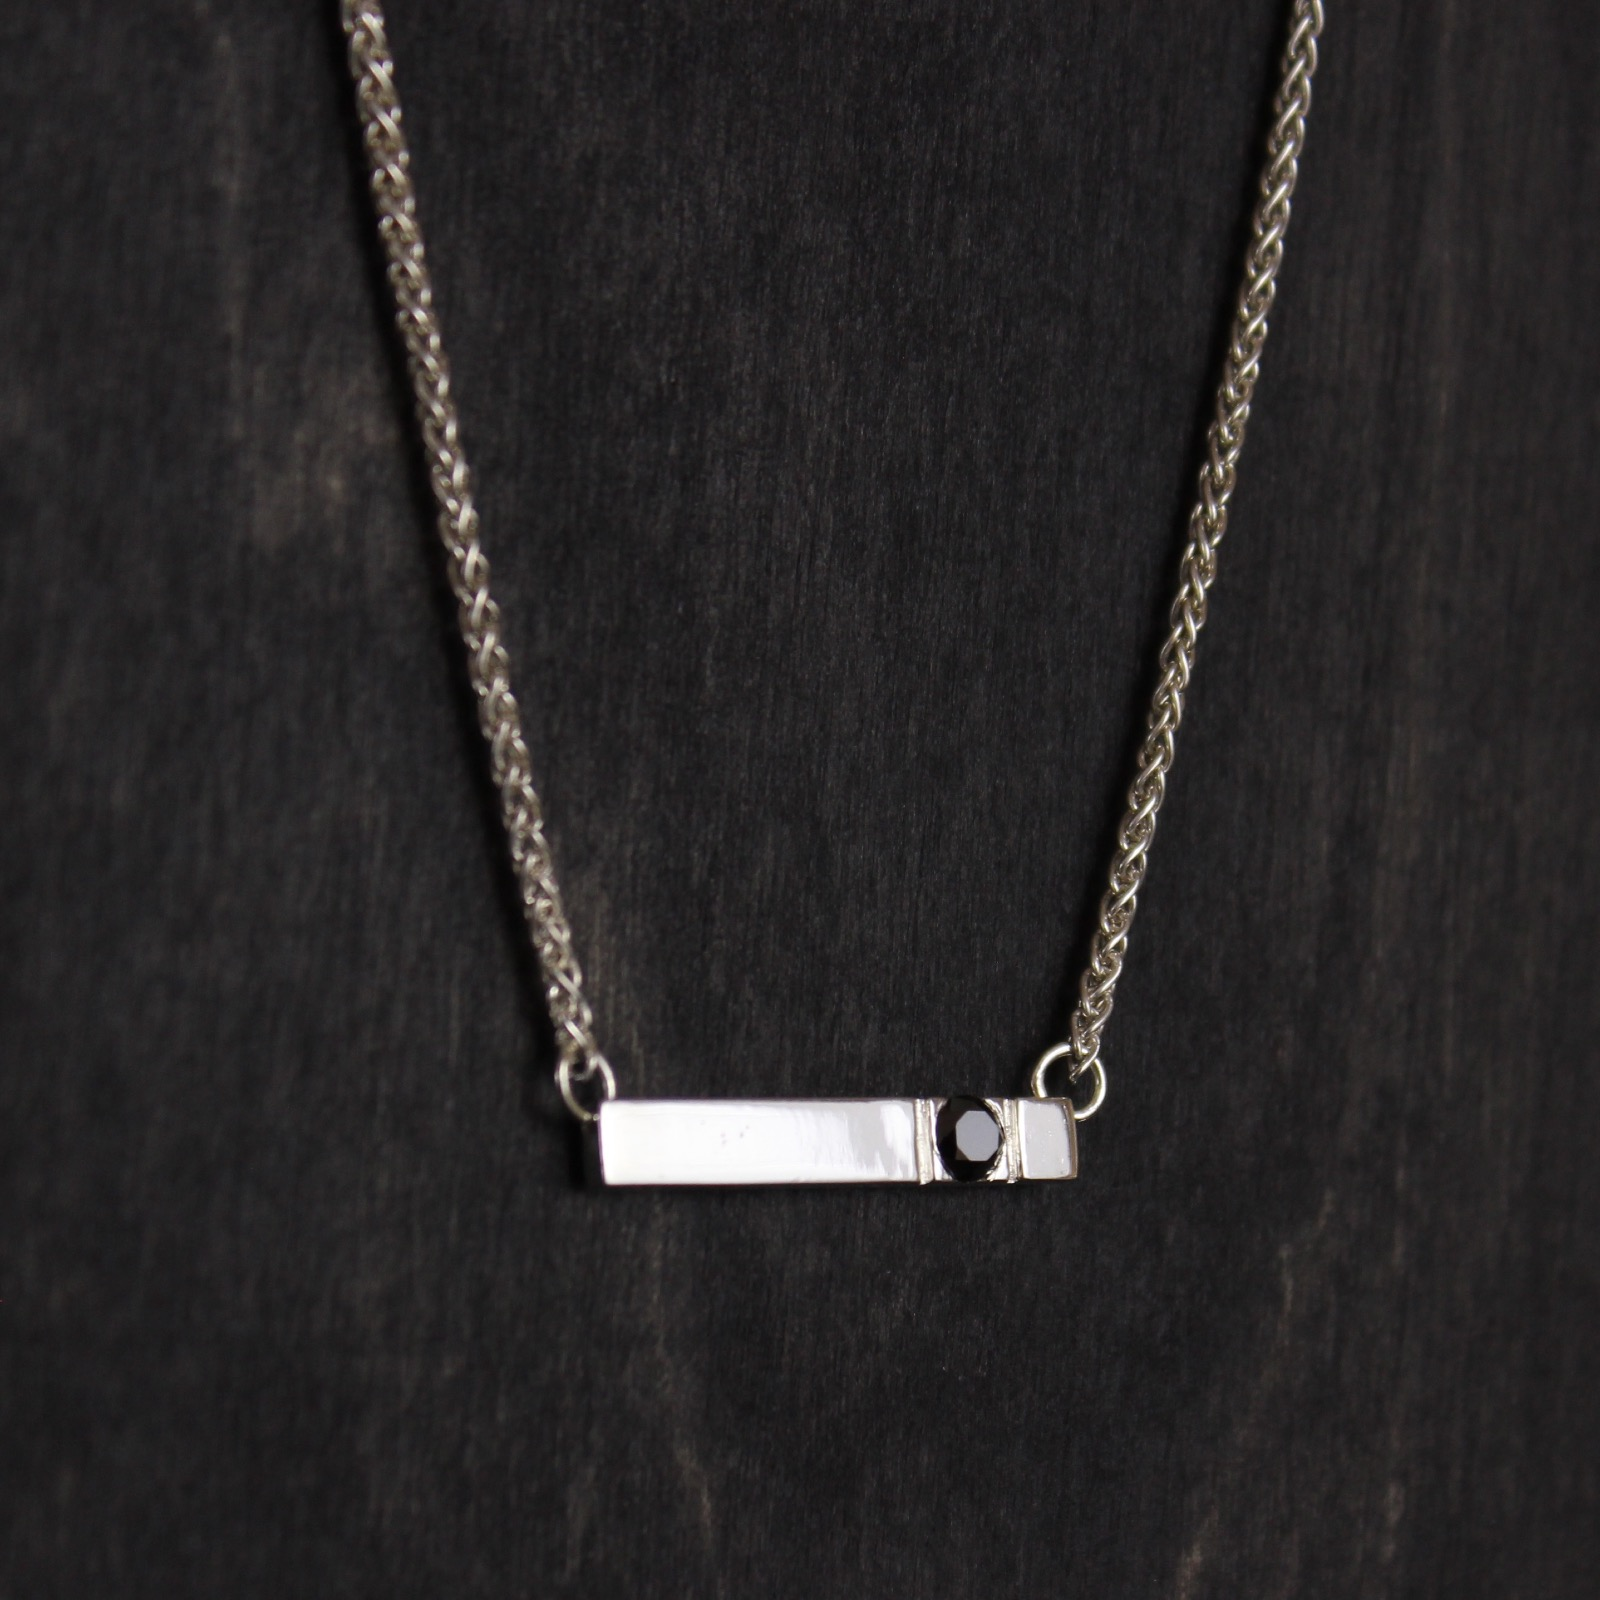 black pendant necklace shop img strout with diamond forge